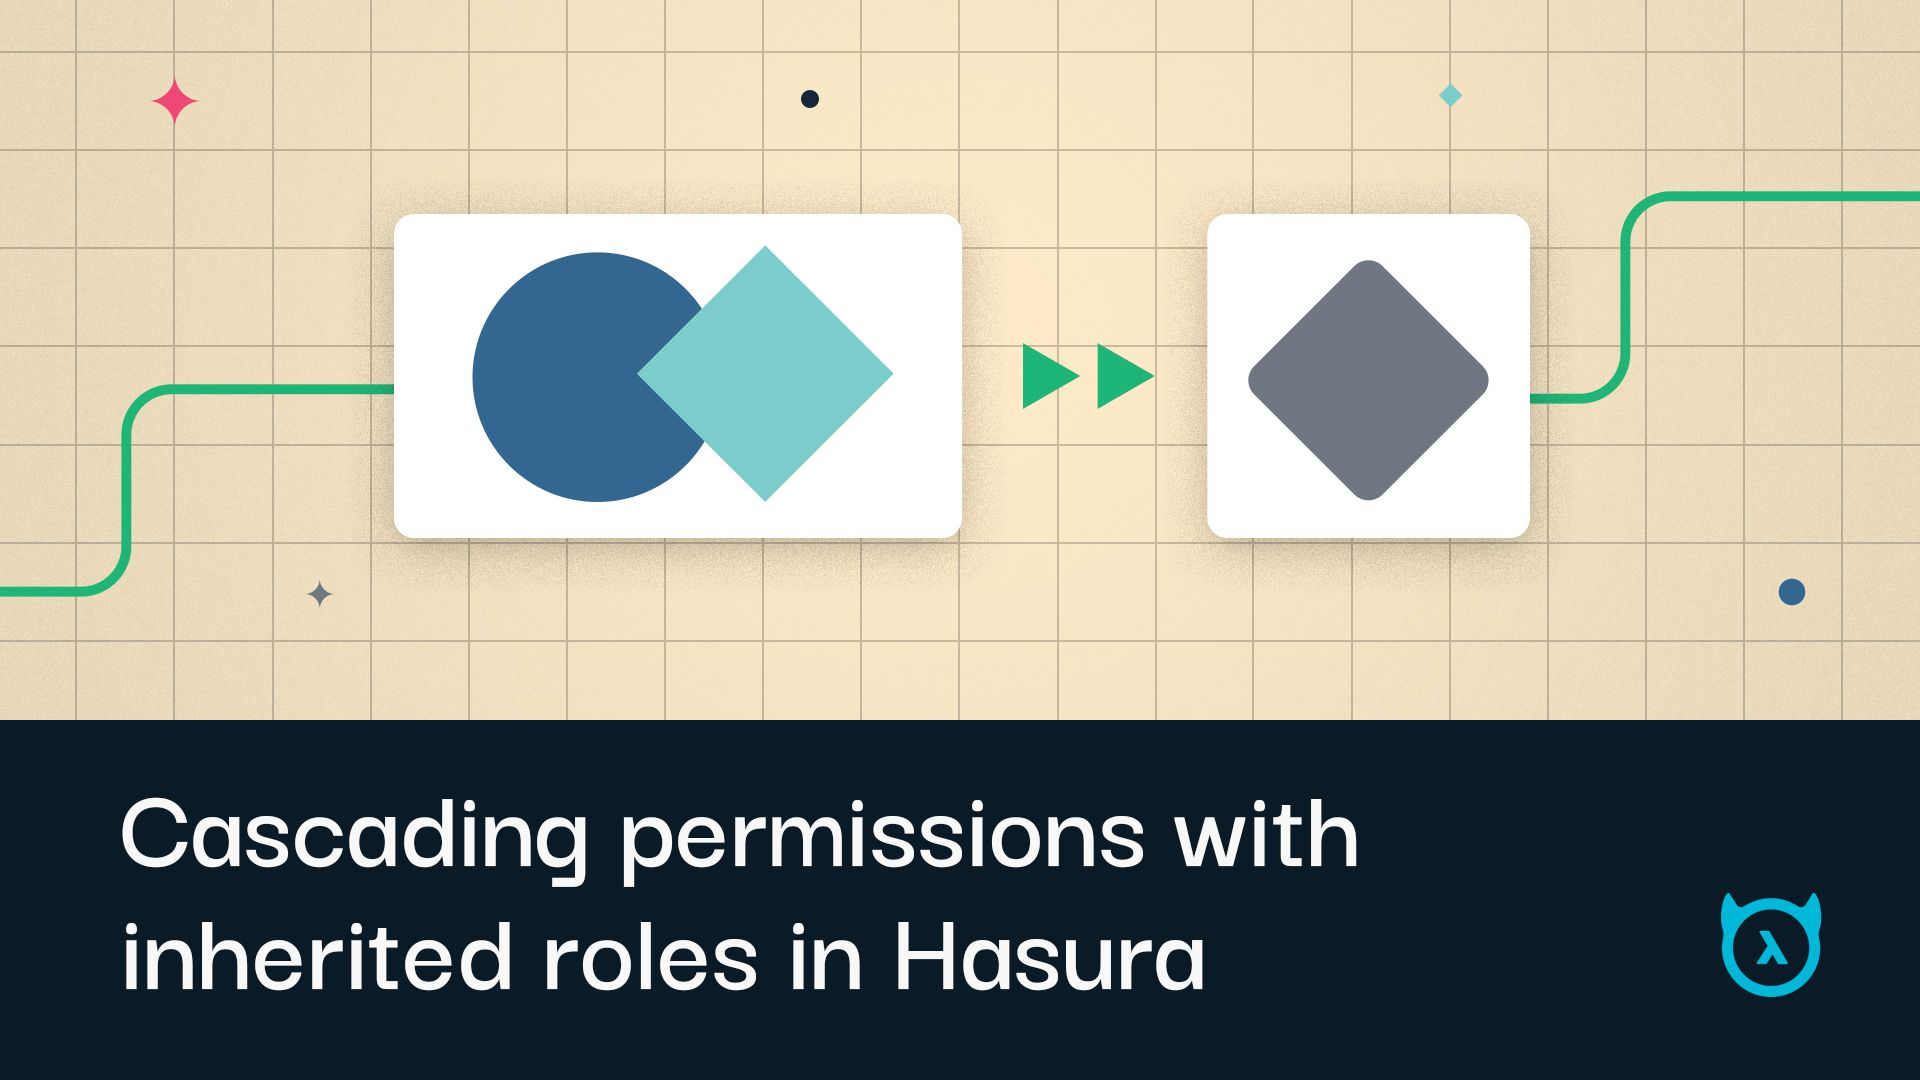 Cascading permissions with inherited roles in Hasura